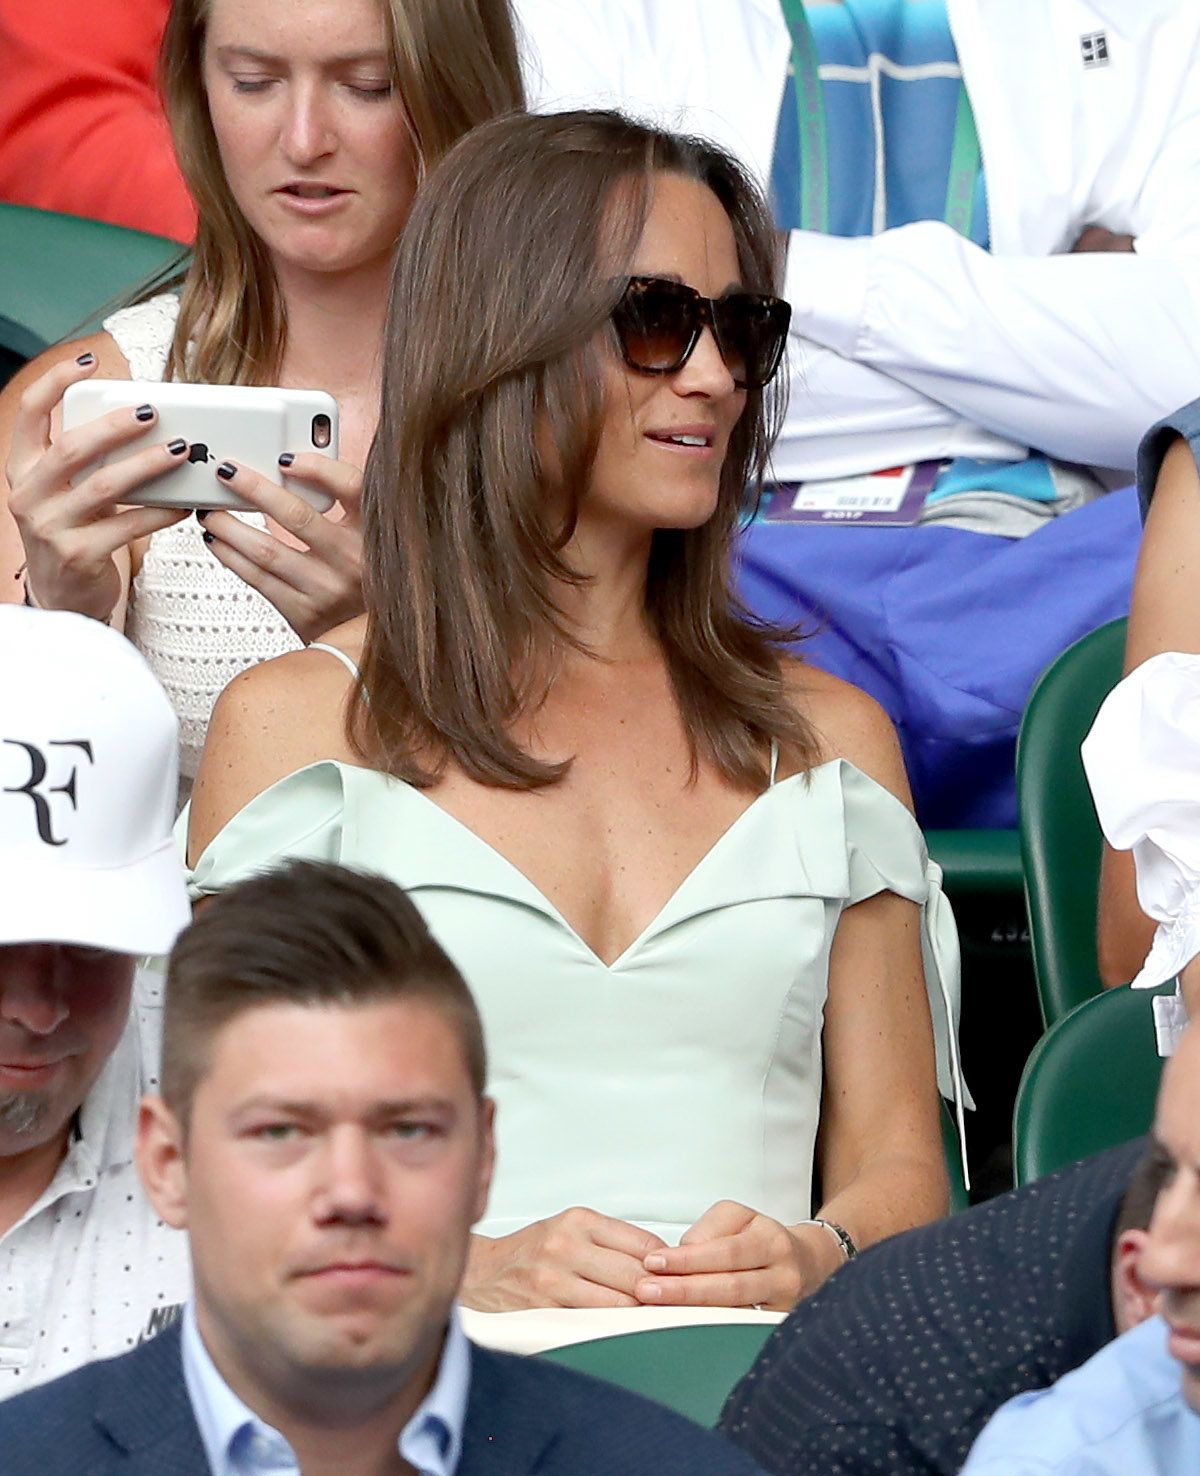 LONDON, ENGLAND - JULY 10:  Pippa Middleton attends day seven of the Wimbledon Tennis Championships at the All England Lawn Tennis and Croquet Club on July 10, 2017 in London, United Kingdom.  (Photo by Karwai Tang/WireImage)